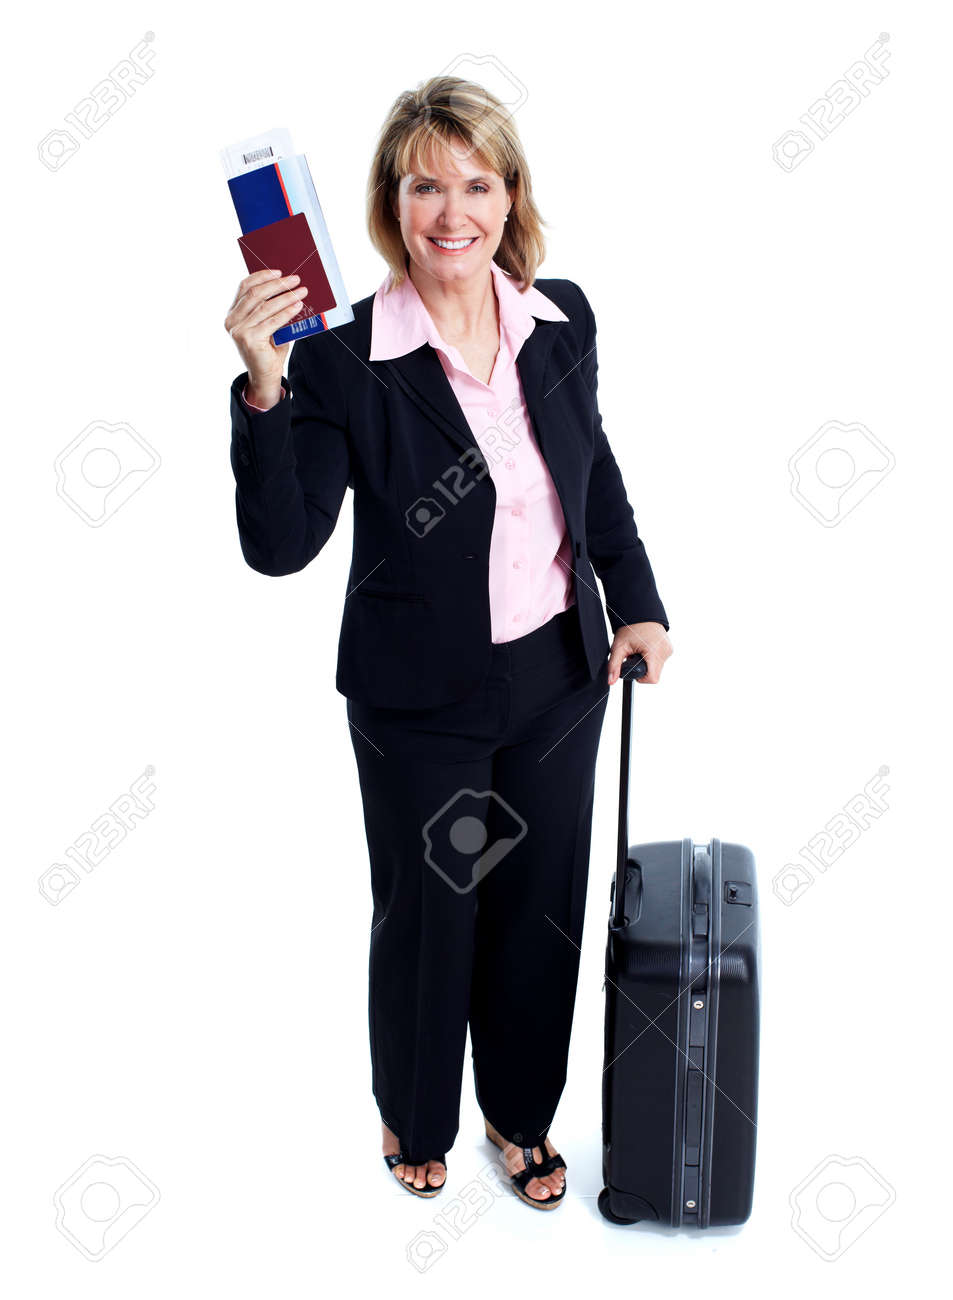 Smiling business woman with suitcase. Stock Photo - 11456432